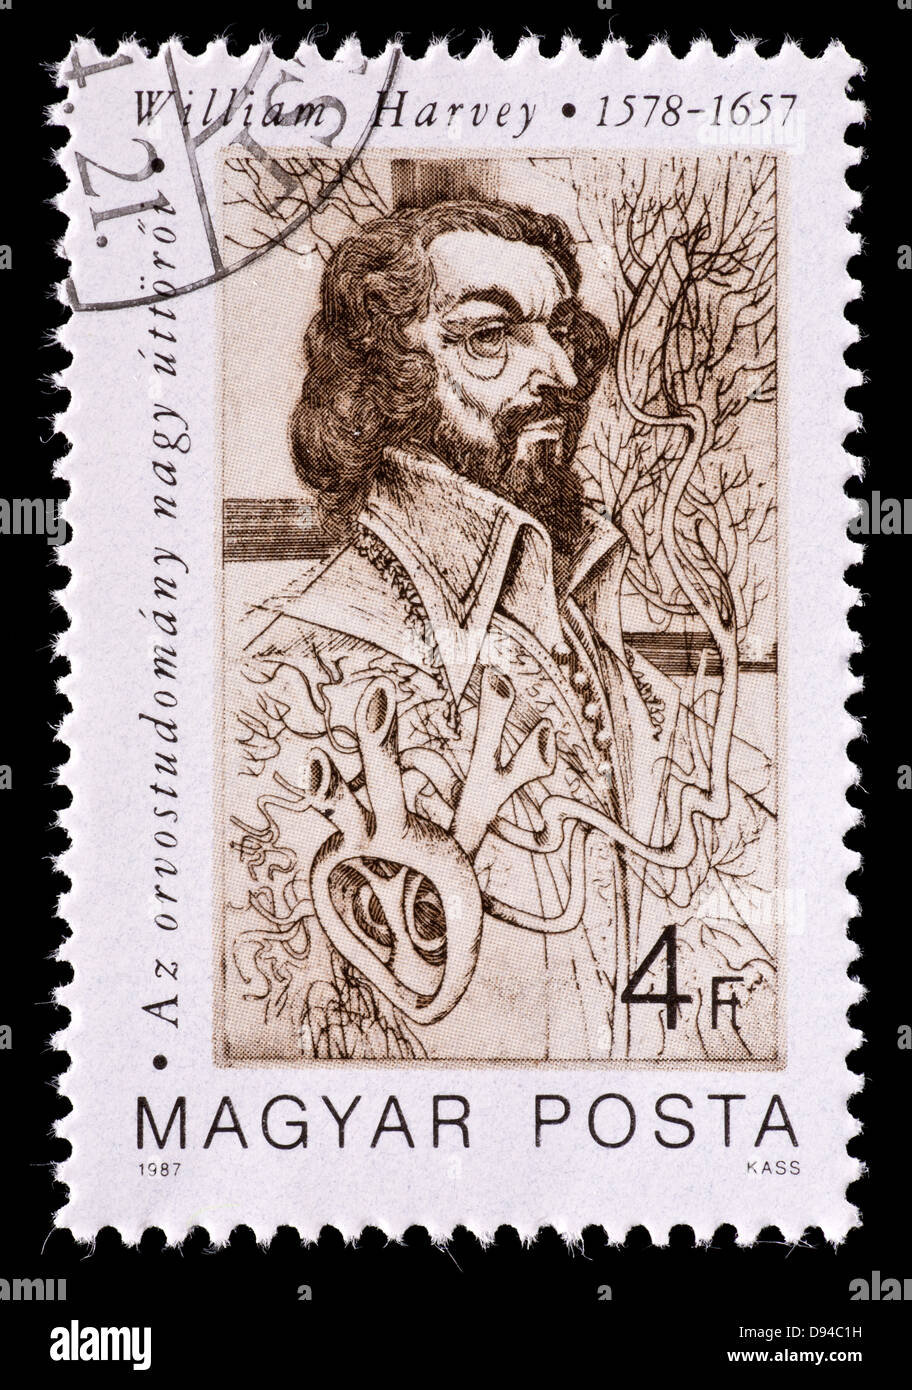 Postage stamp from Hungary depicting William Harvey, early medical pioneer and anatomist. - Stock Image